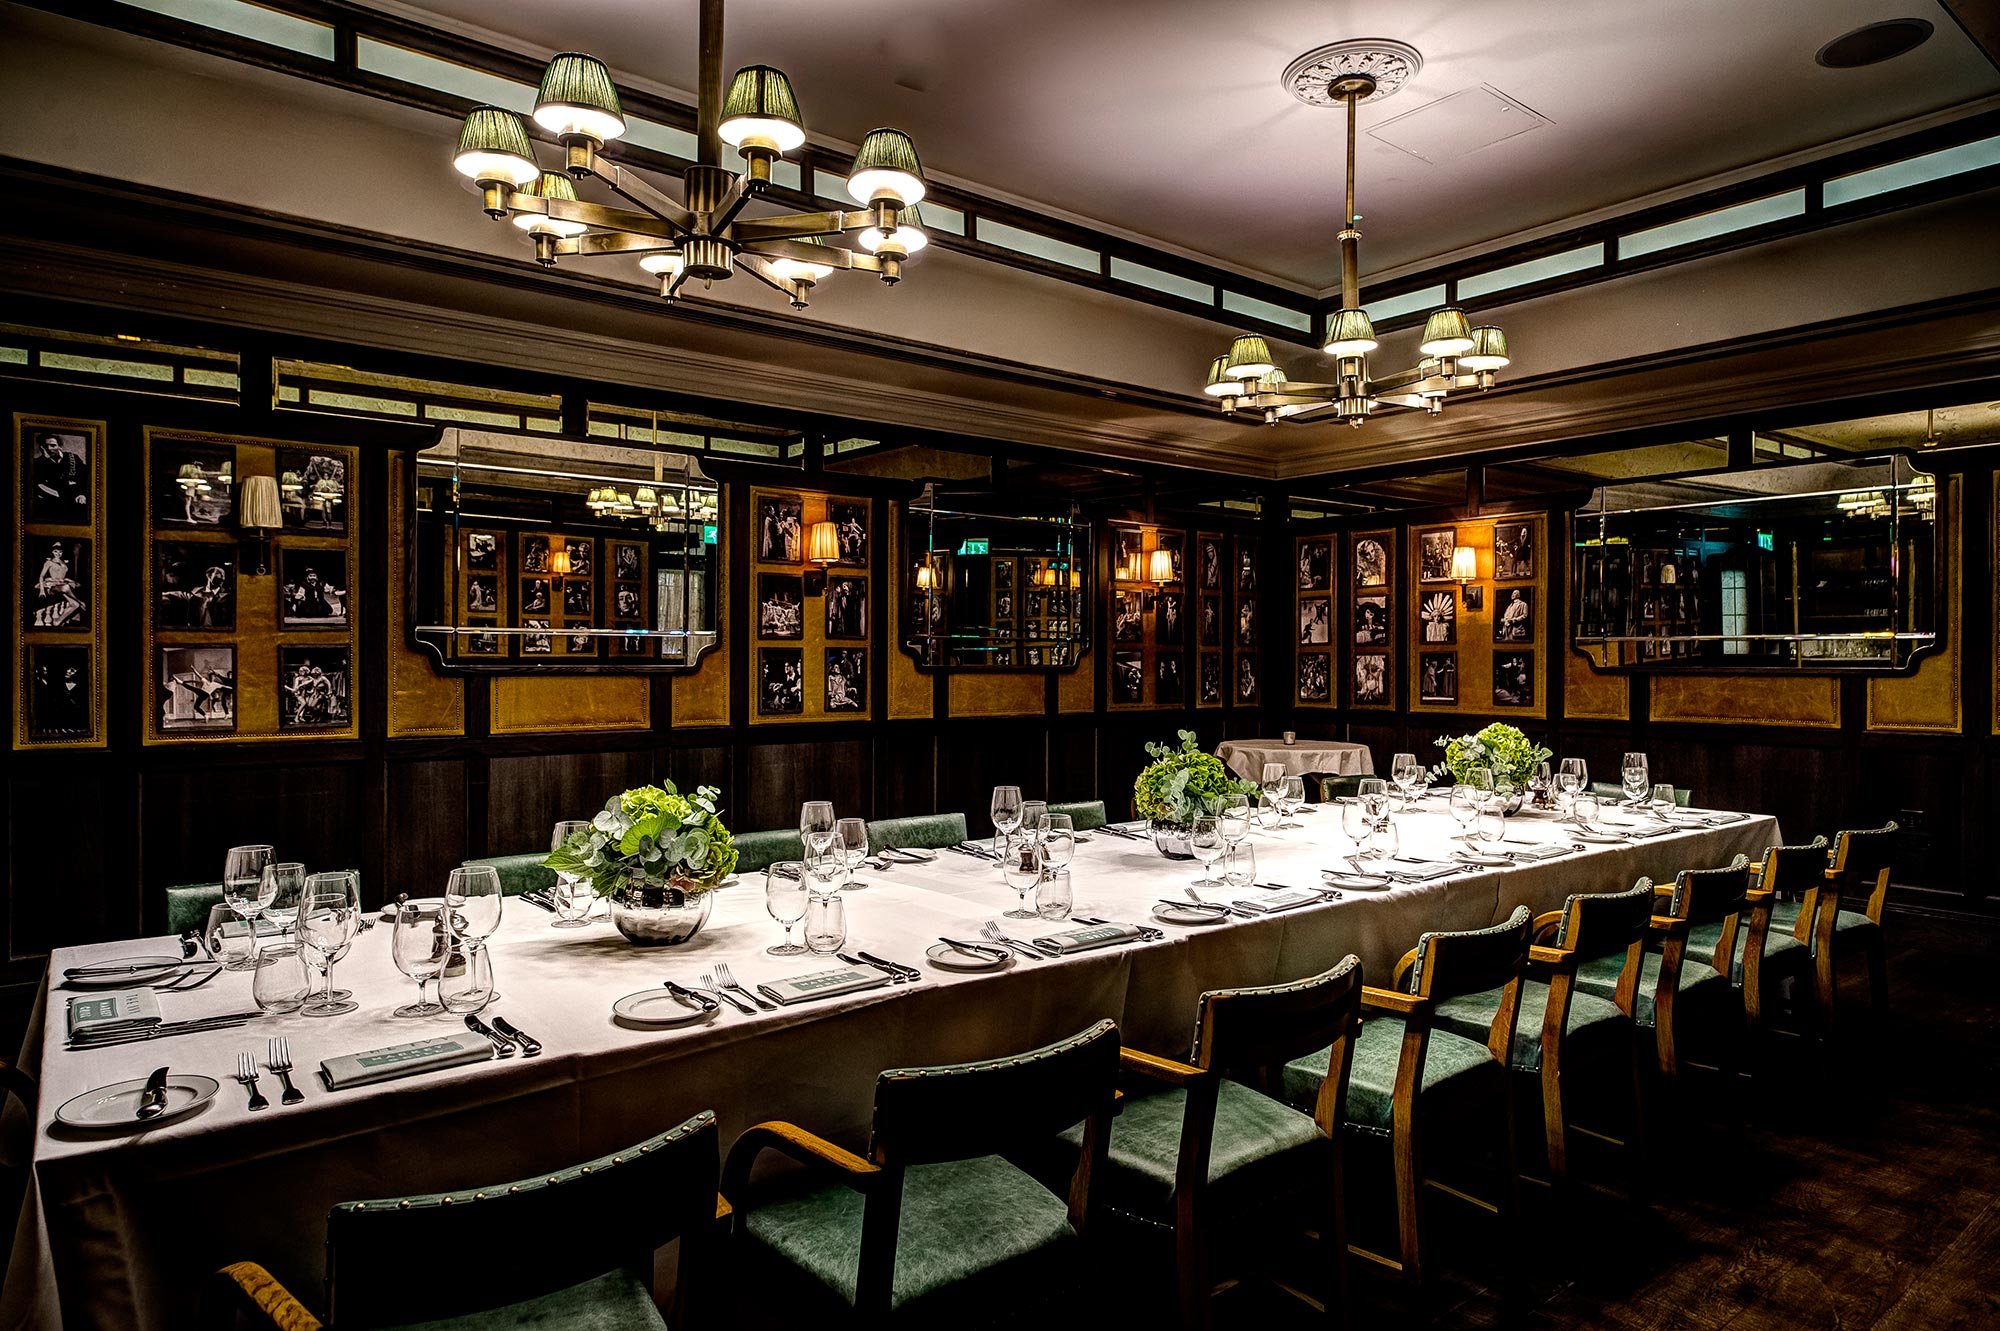 Group Dining in Covent Garden, The Ivy Market Grill - The Pygmalion Room, one long table - The Ivy Market Grill